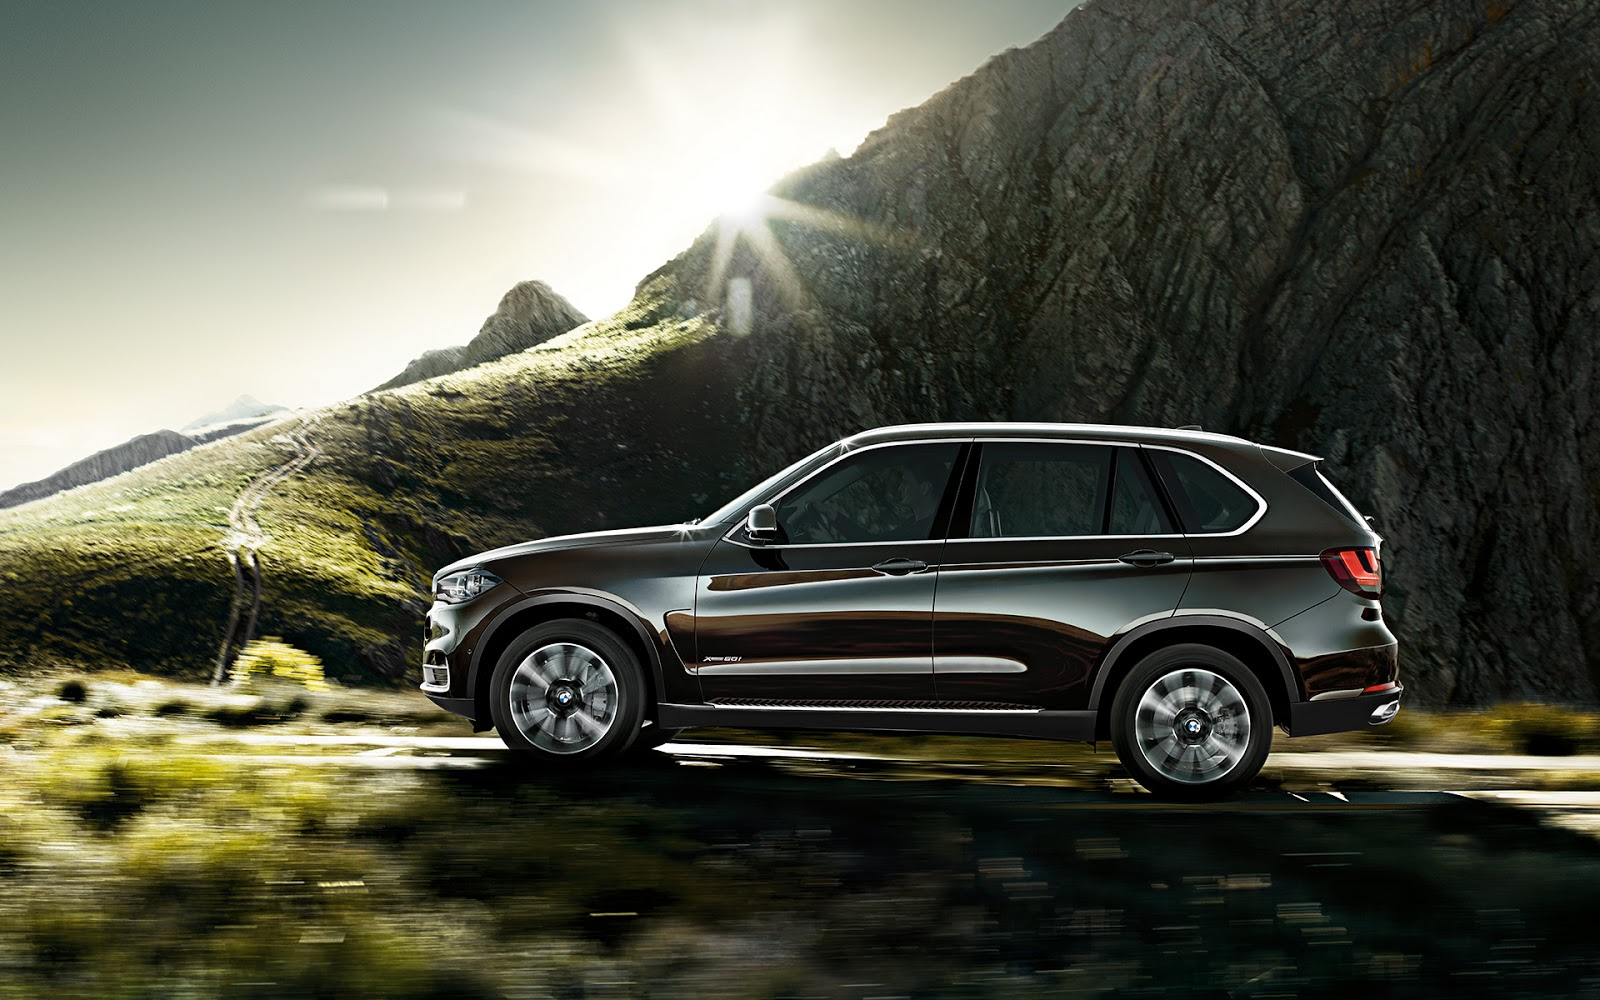 F15 2014 bmw x5 wallpapers and video town country bmw inside we have a full gallery of the all new f15 2014 bmw x5 wallpapers also at the very bottom we have included a video of the new x5 in action voltagebd Image collections